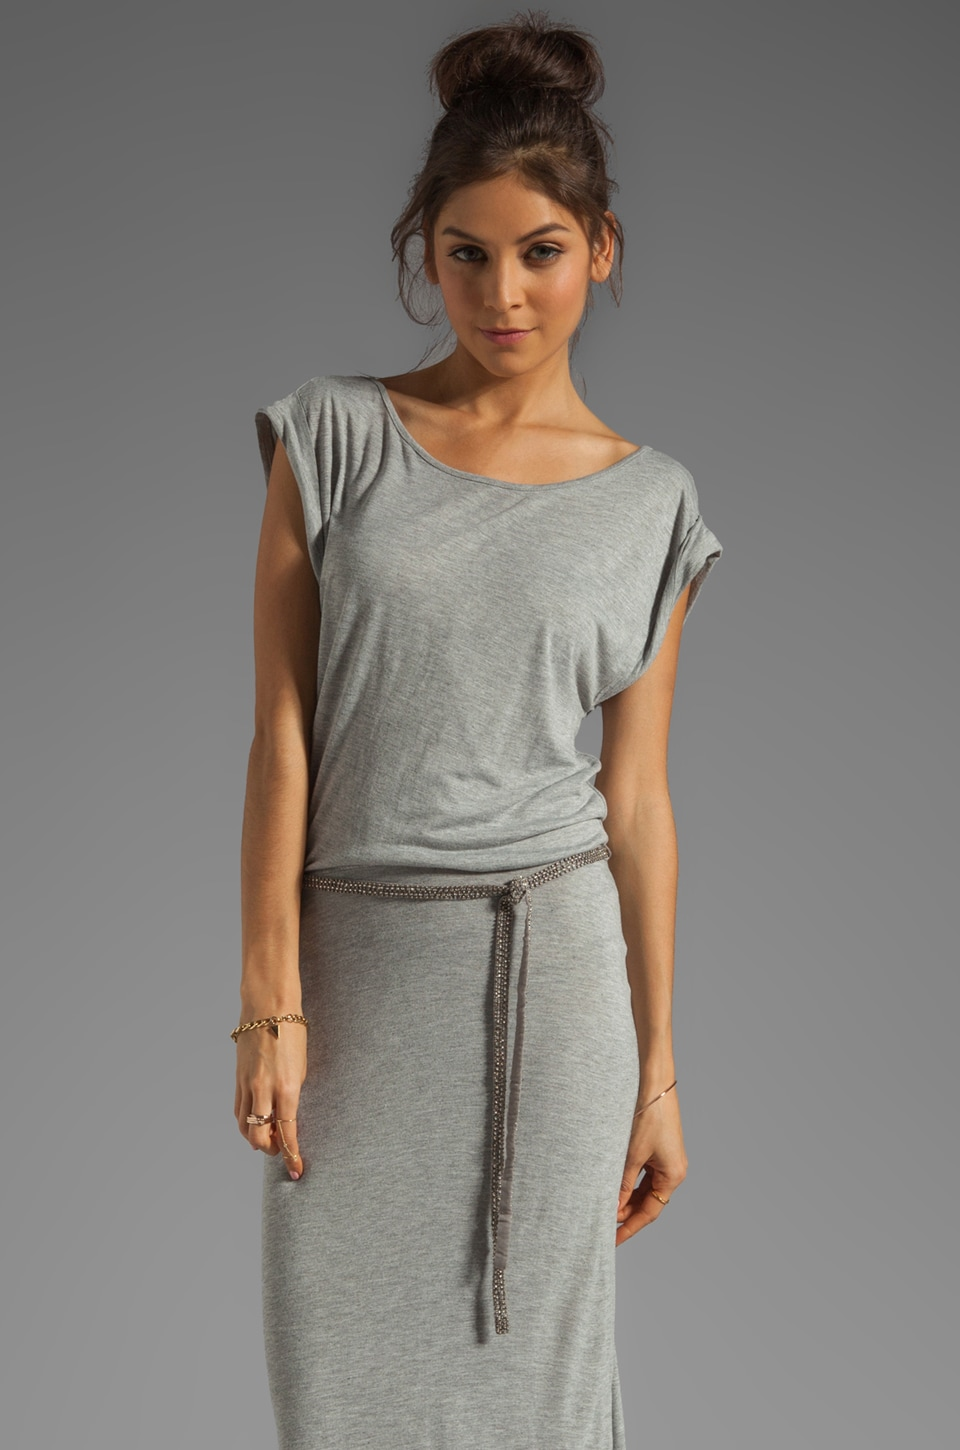 PJK Patterson J. Kincaid Fabre Maxi Dress in Heather Grey